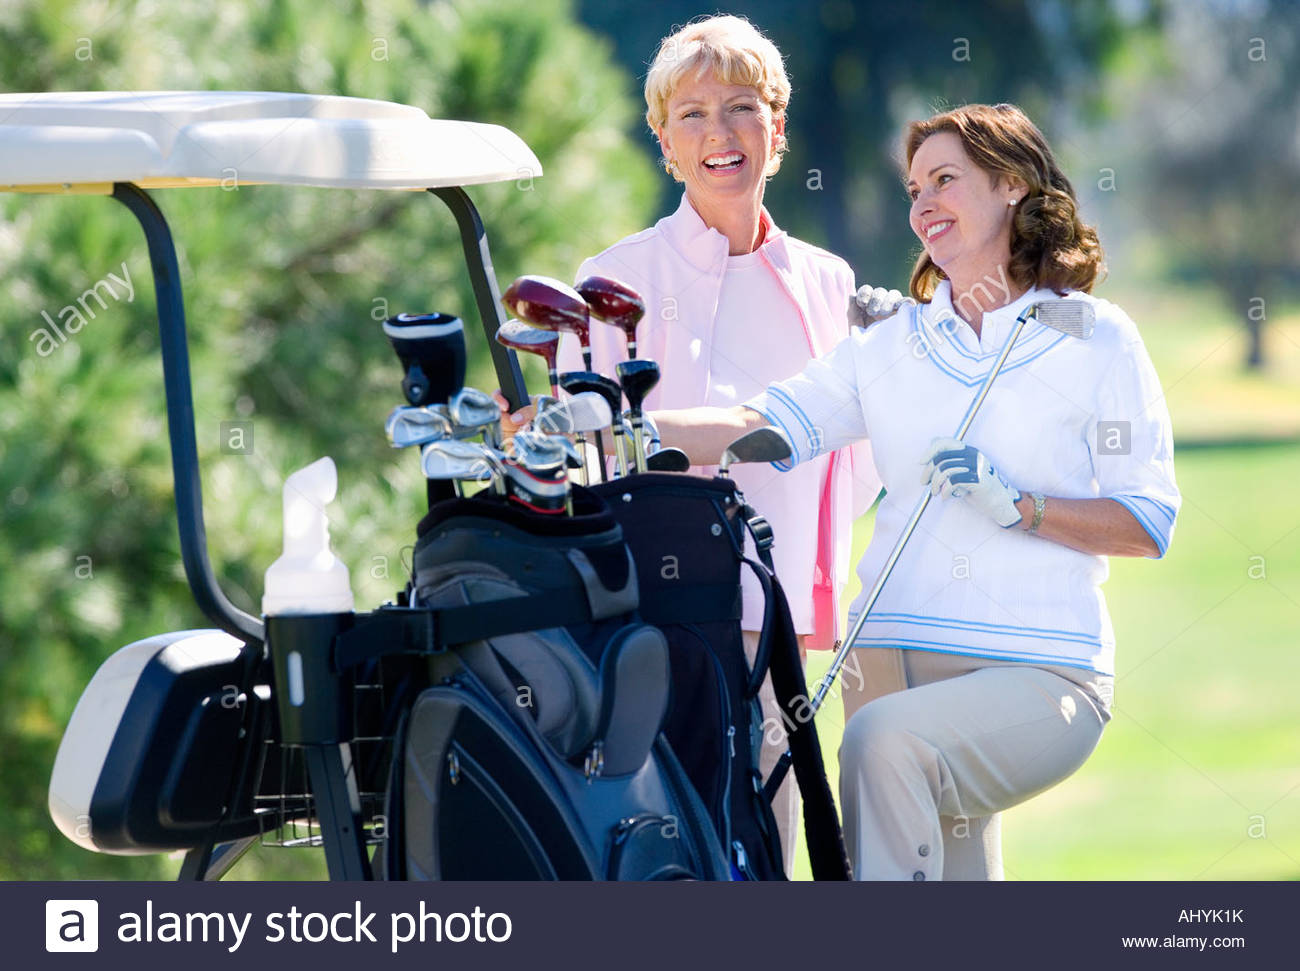 Two mature woman playing around